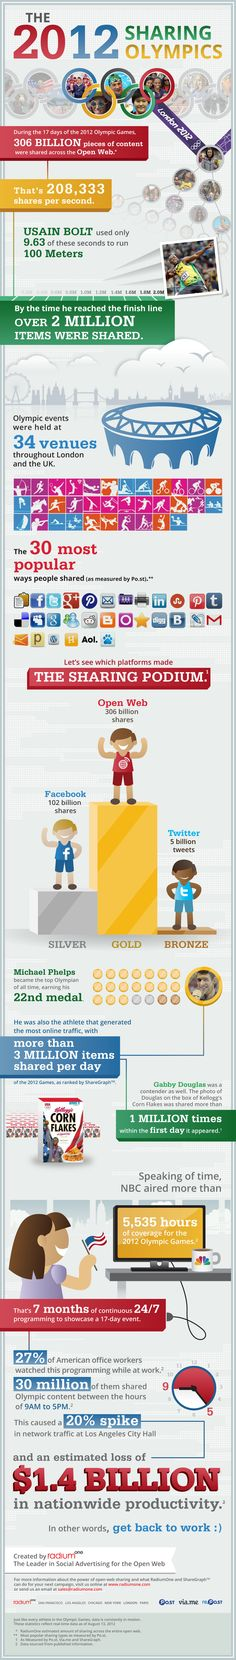 Social Media Stats from #London2012, the '#Sharing #Olympics' @jeffbullas HT @JeffSheehan @getWISEgroup